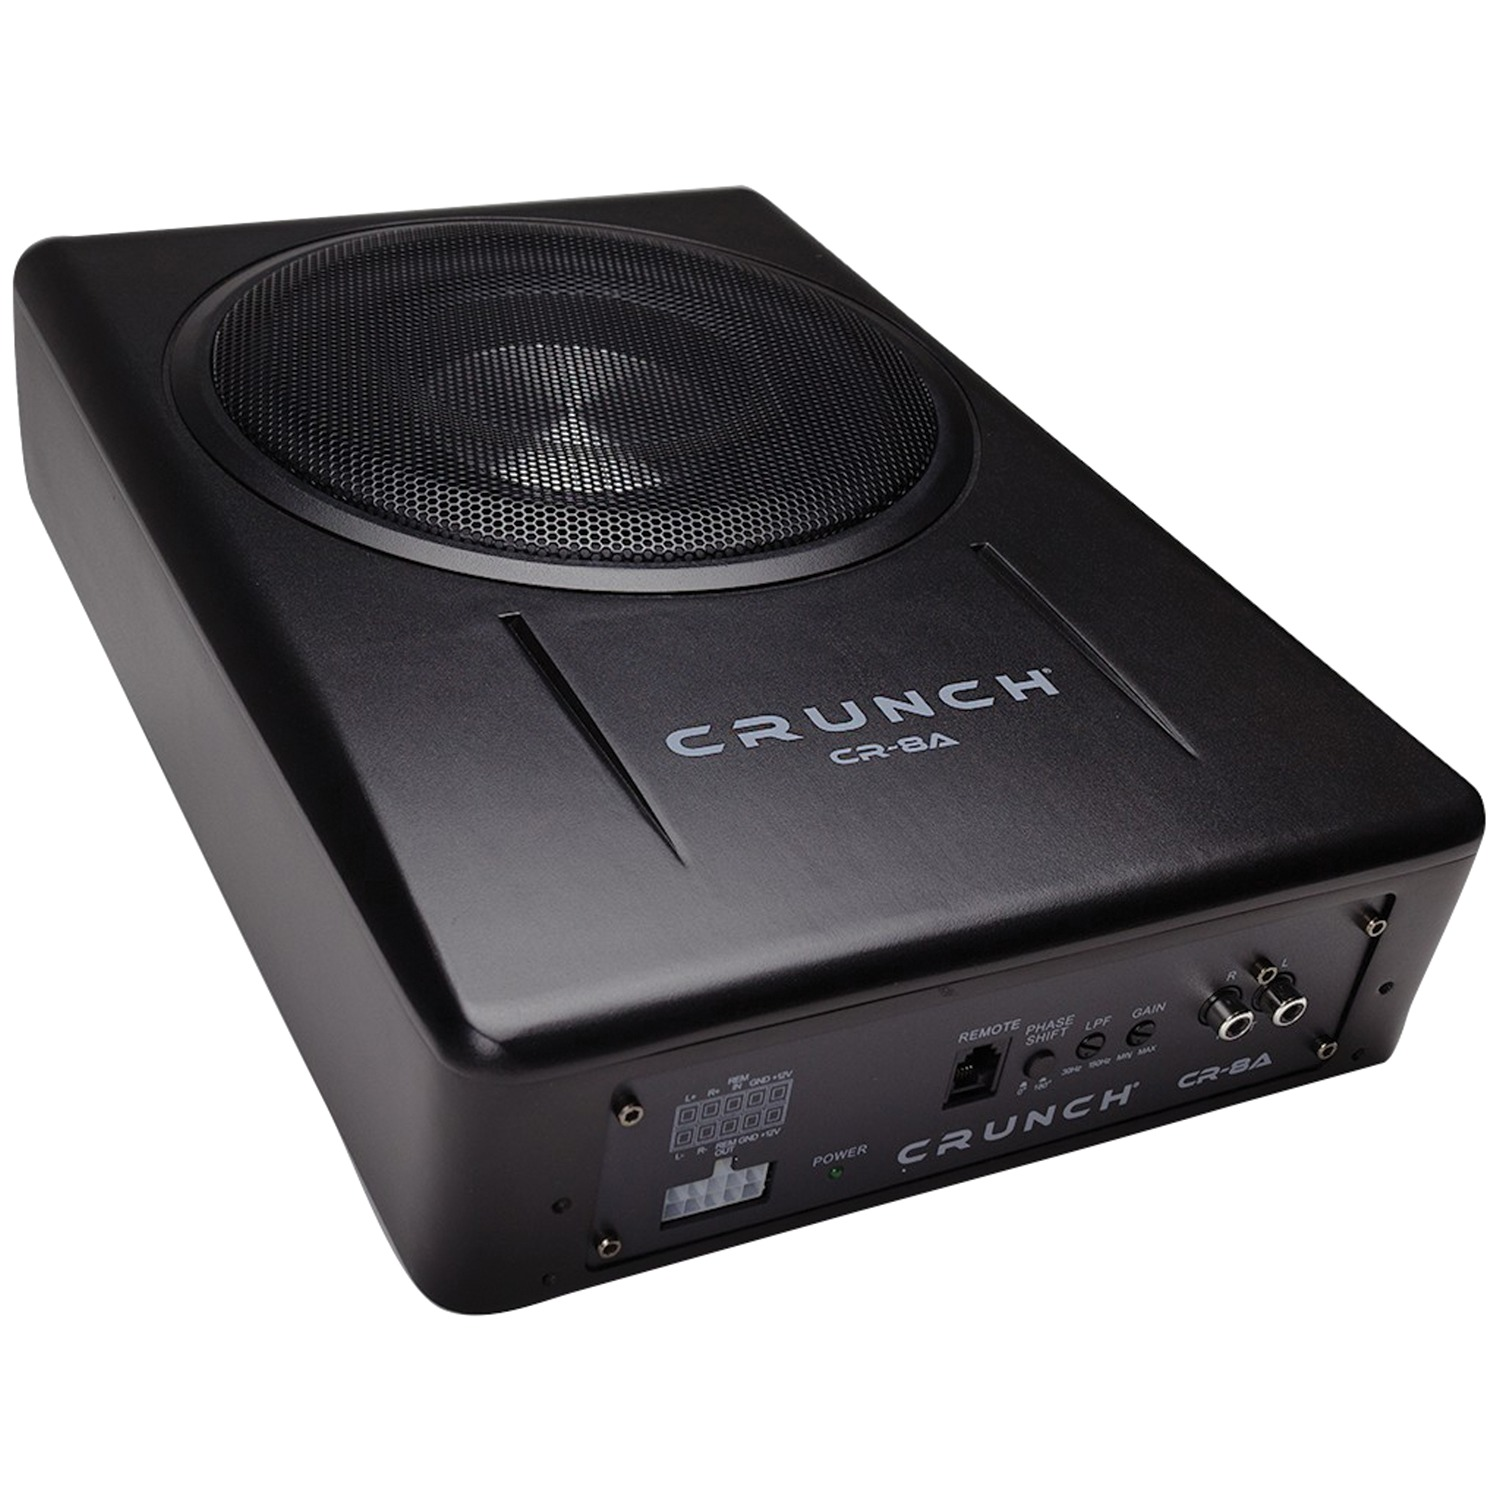 "Crunch CR-8A CR-8A Powered 8"" 400-Watt Low-Profile Subwoofer System"